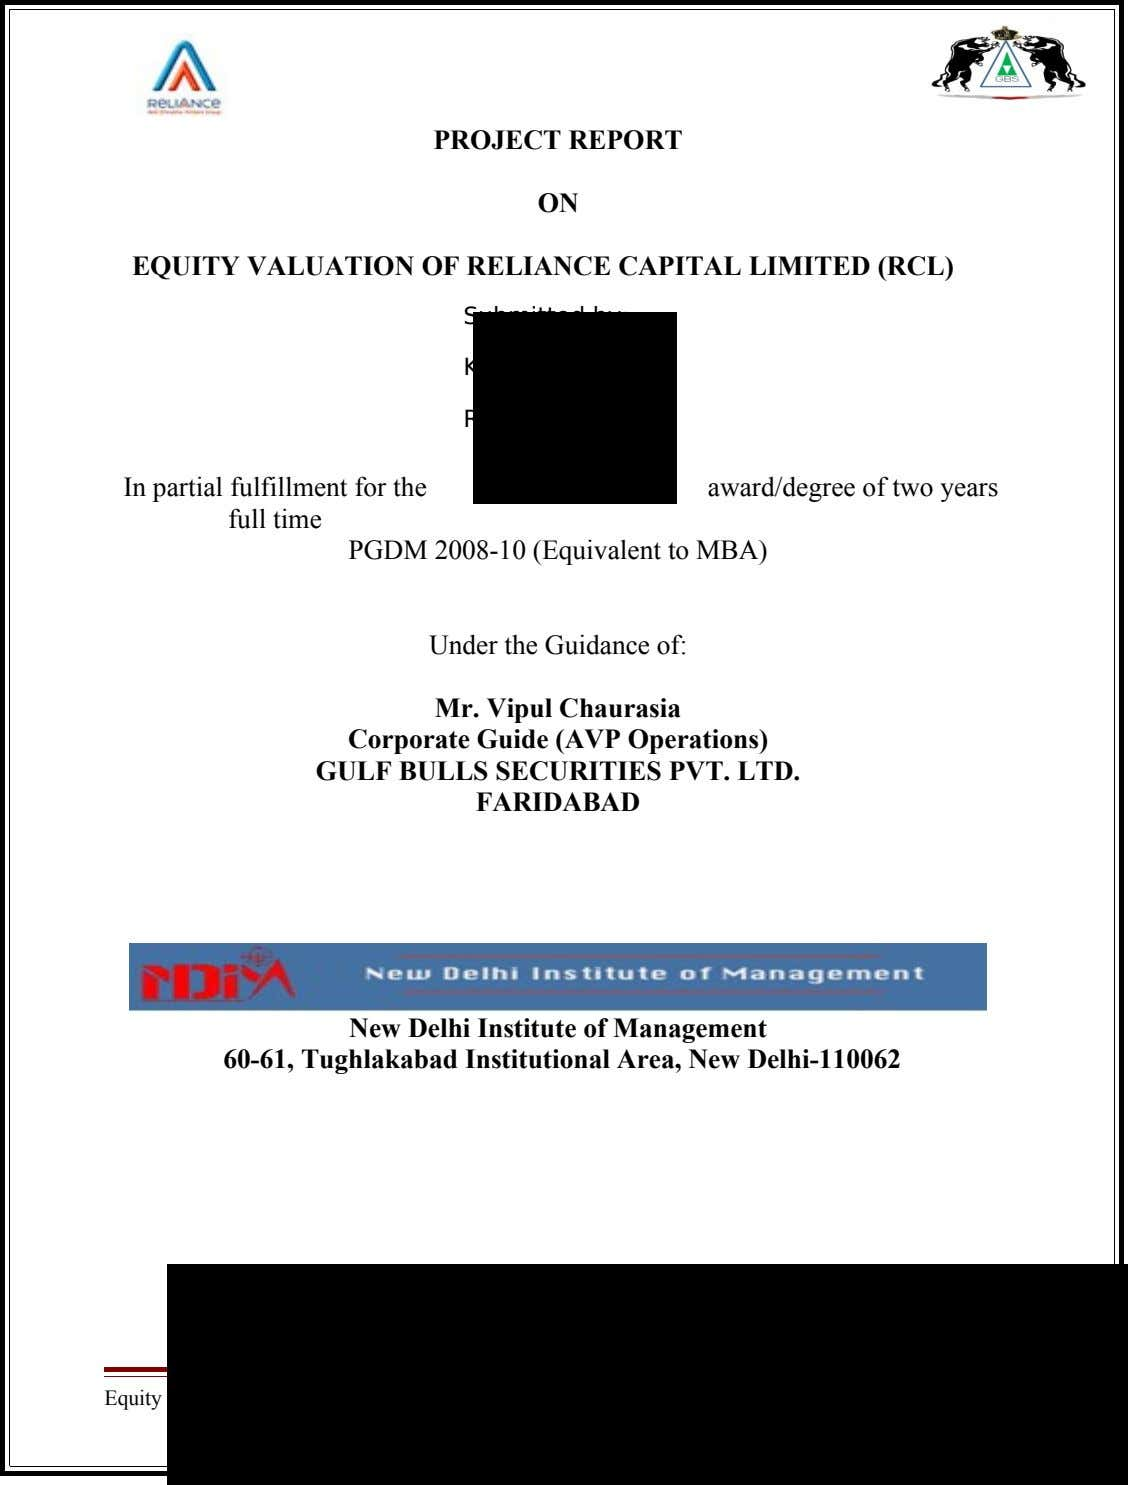 PROJECT REPORT ON EQUITY VALUATION OF RELIANCE CAPITAL LIMITED (RCL) Submitted by: KHUSHBU RAJ Roll No.